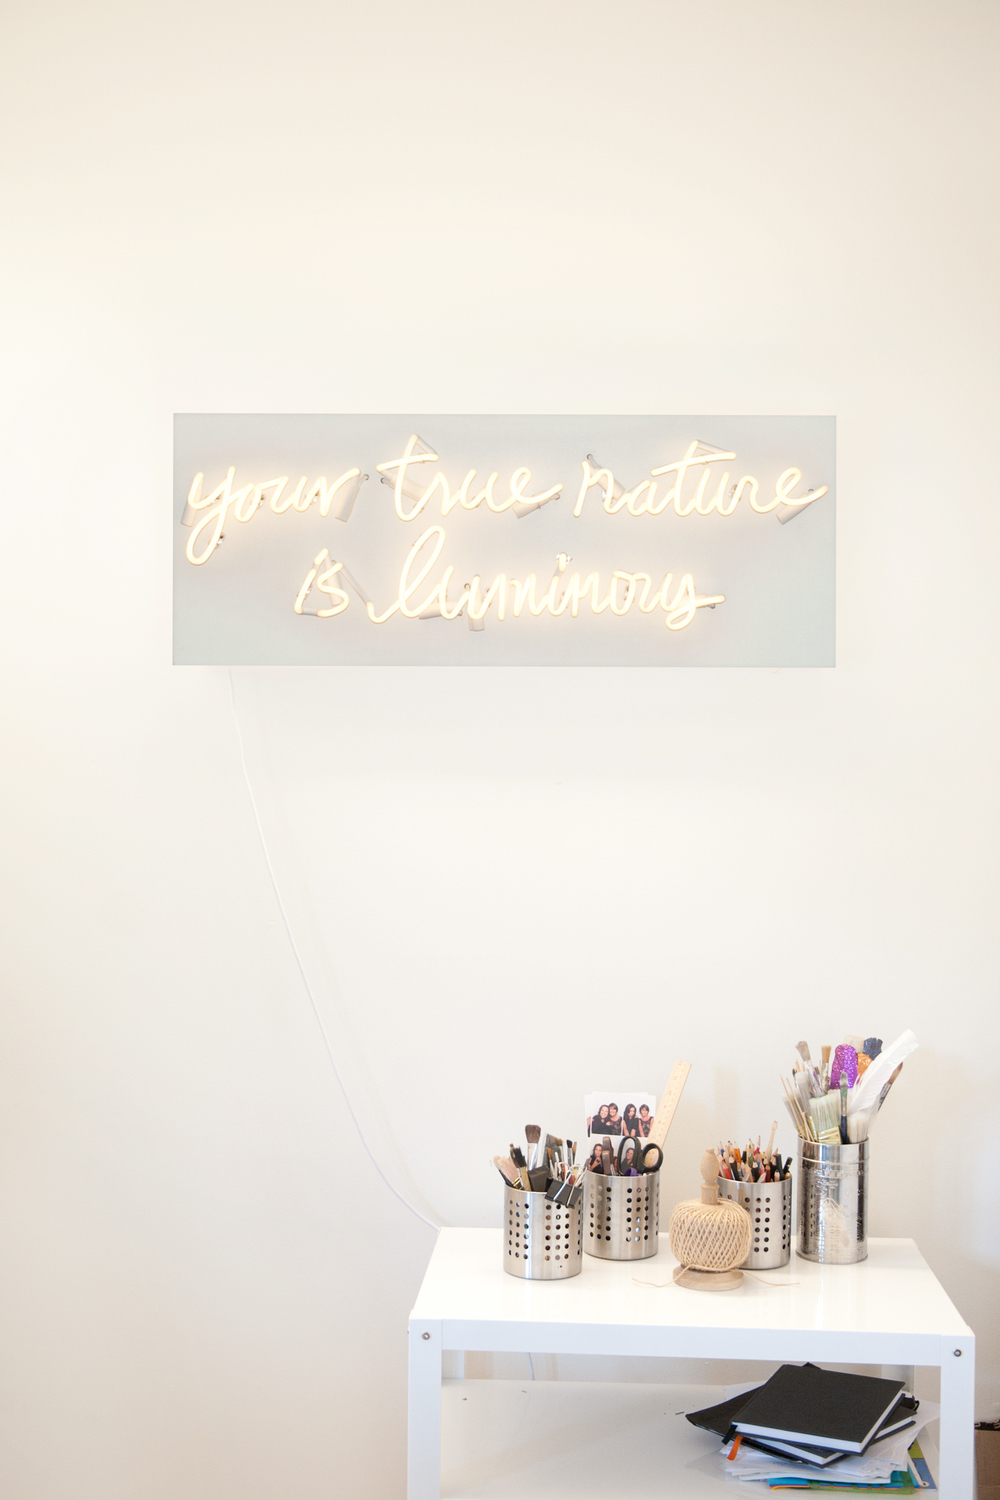 Danielle Laporte's product photography of this gorgeous neon #truthbomb, 2014.